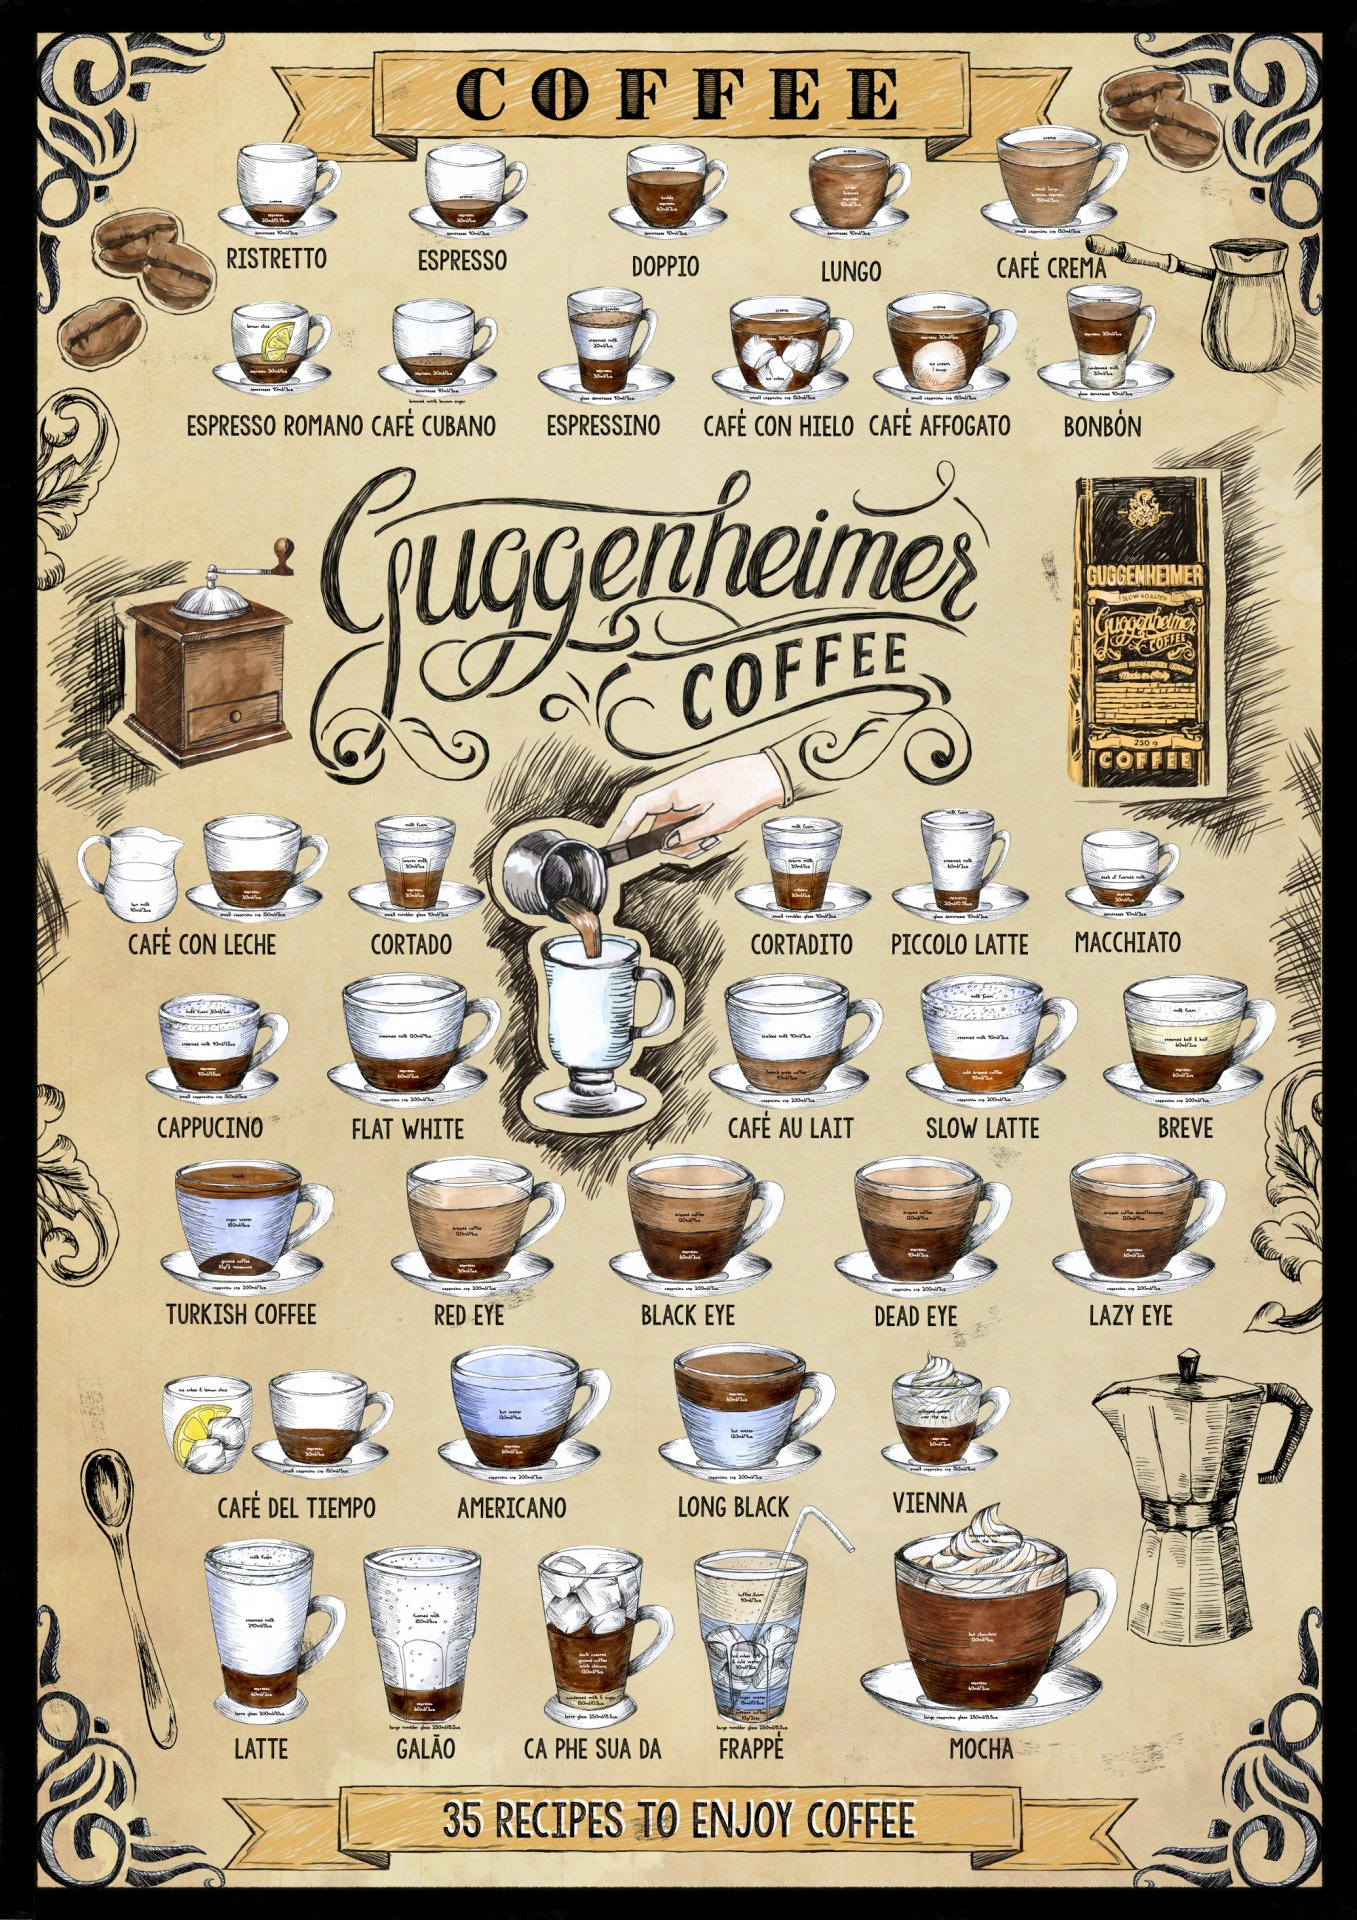 35 Coffee Recipes by Guggenheimer Coffee 2000 x 2828.jpg